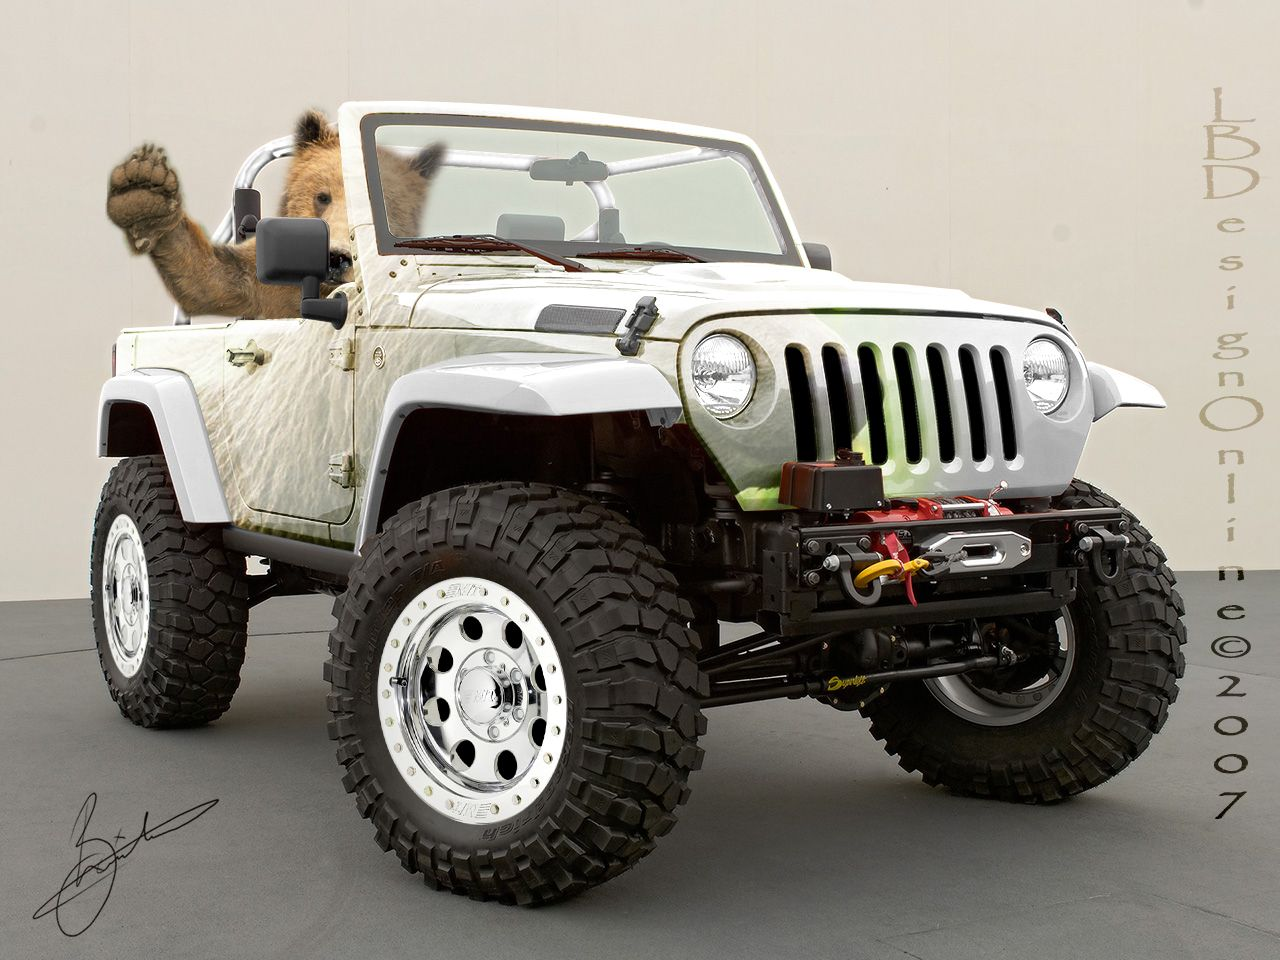 Pin By Michelle Claypool On Jeep Jeep Wrangler Rubicon 2006 Jeep Wrangler Jeep Wrangler